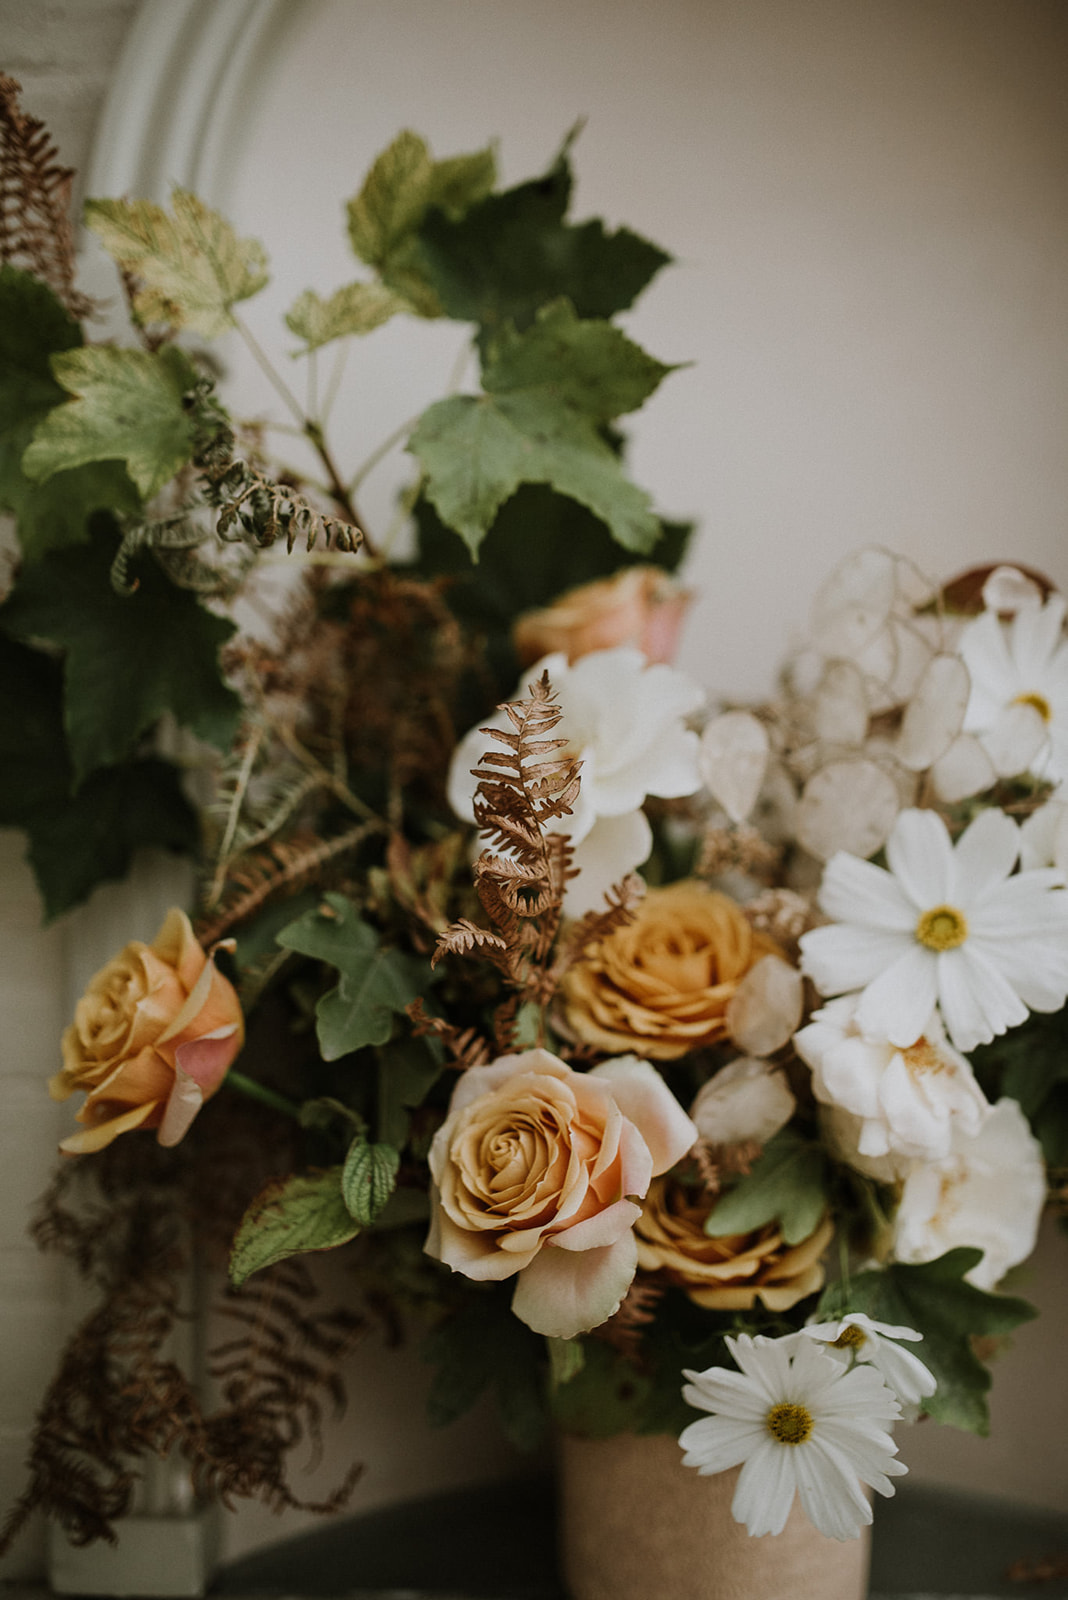 Flower and Fern Sussex Florist Contact Page.jpg